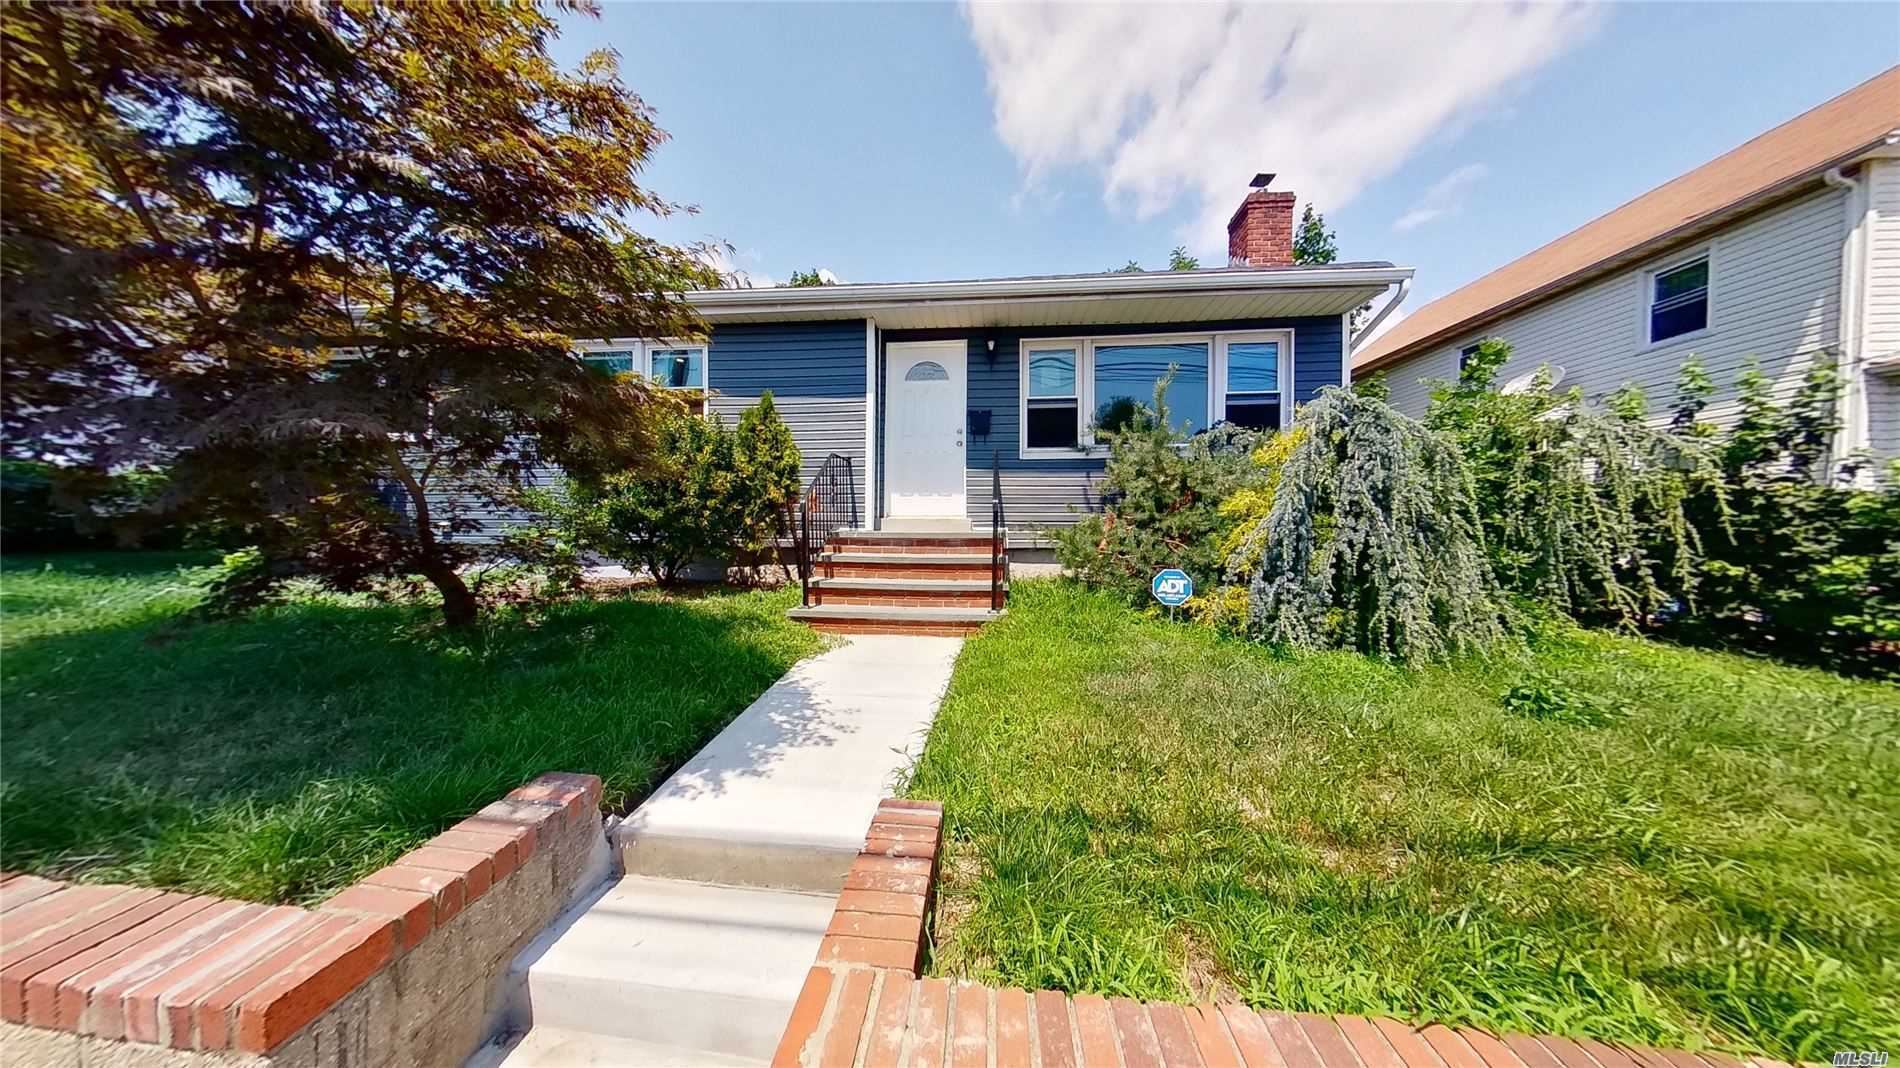 252 Louis Ave. Ave, South Floral Park, NY 11001 - MLS#: 3224951